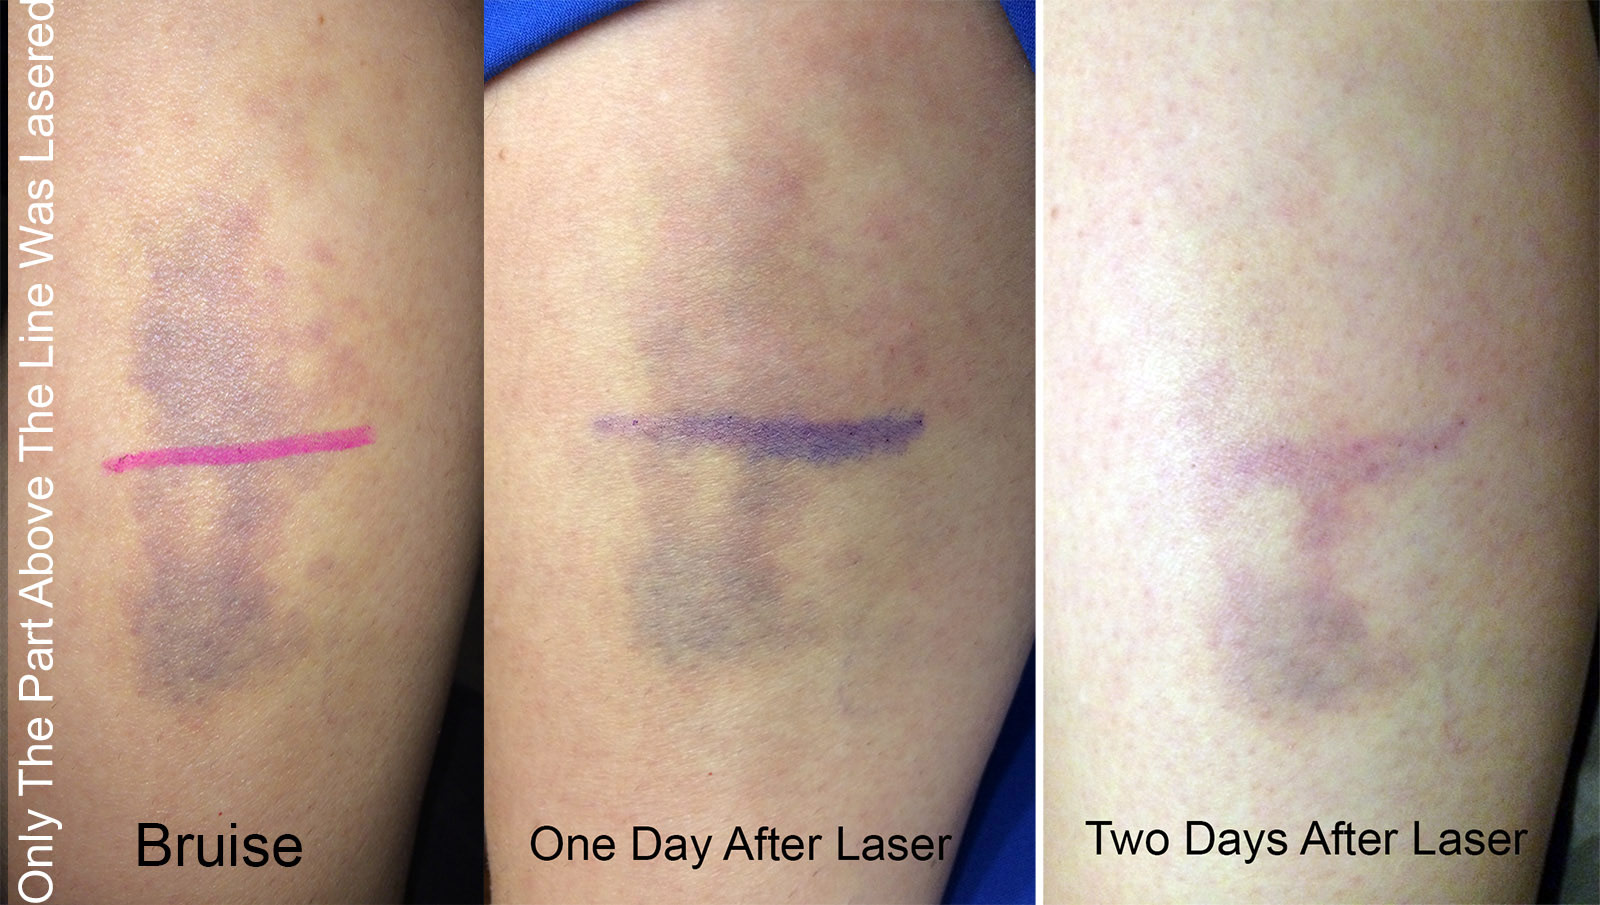 Laser That Gets Rid of Bruises